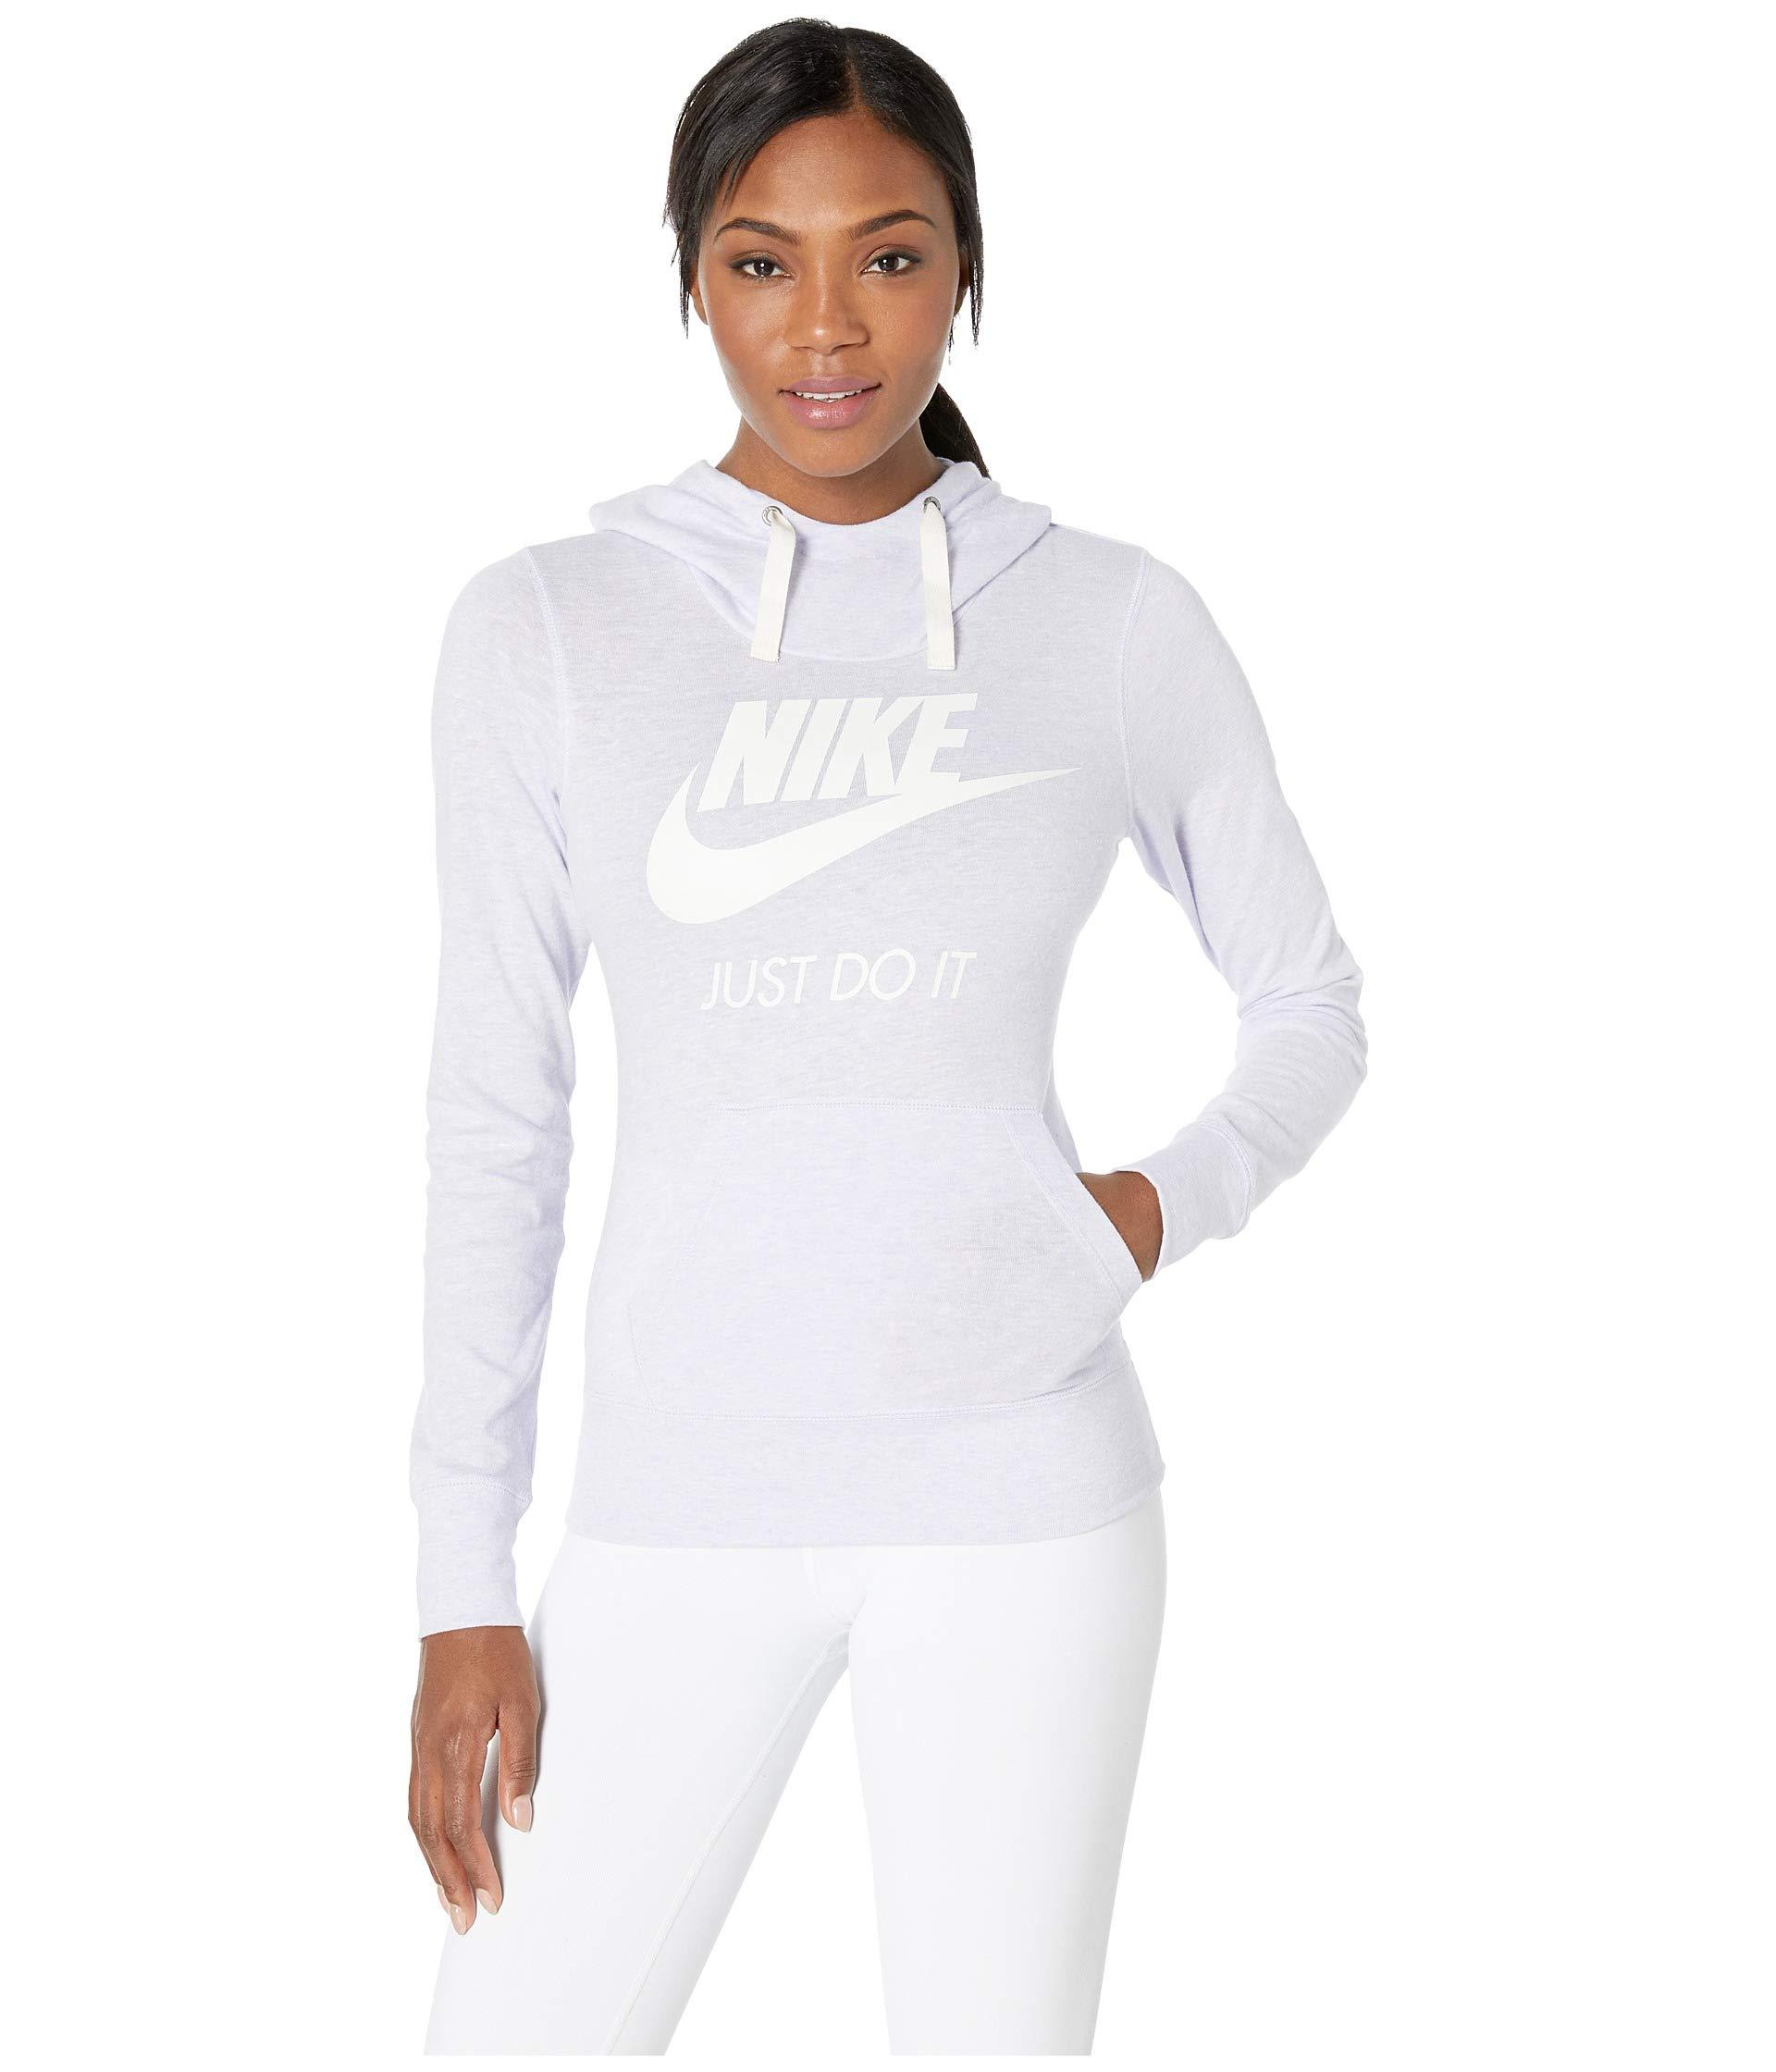 aac6274d423b5a Lyst - Nike Sportswear Gym Vintage Hbr Hoodie in White - Save 7%